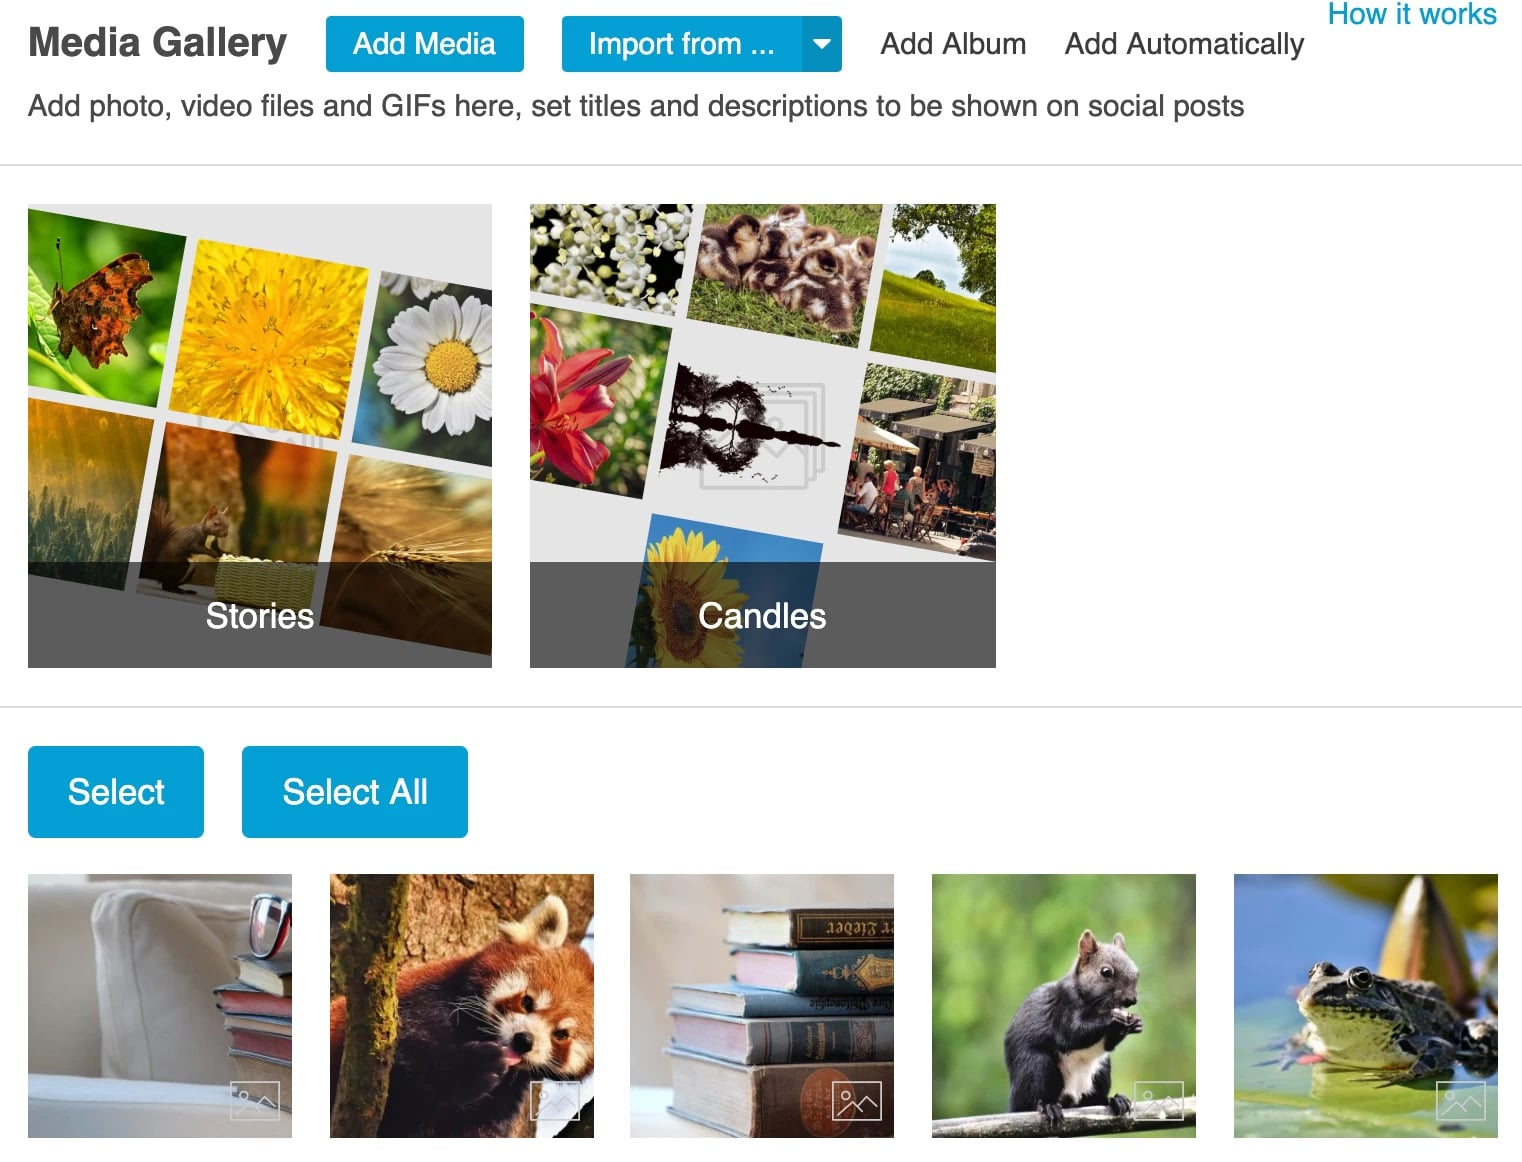 Media gallery of the Social Rabbit plugin by AliDropship